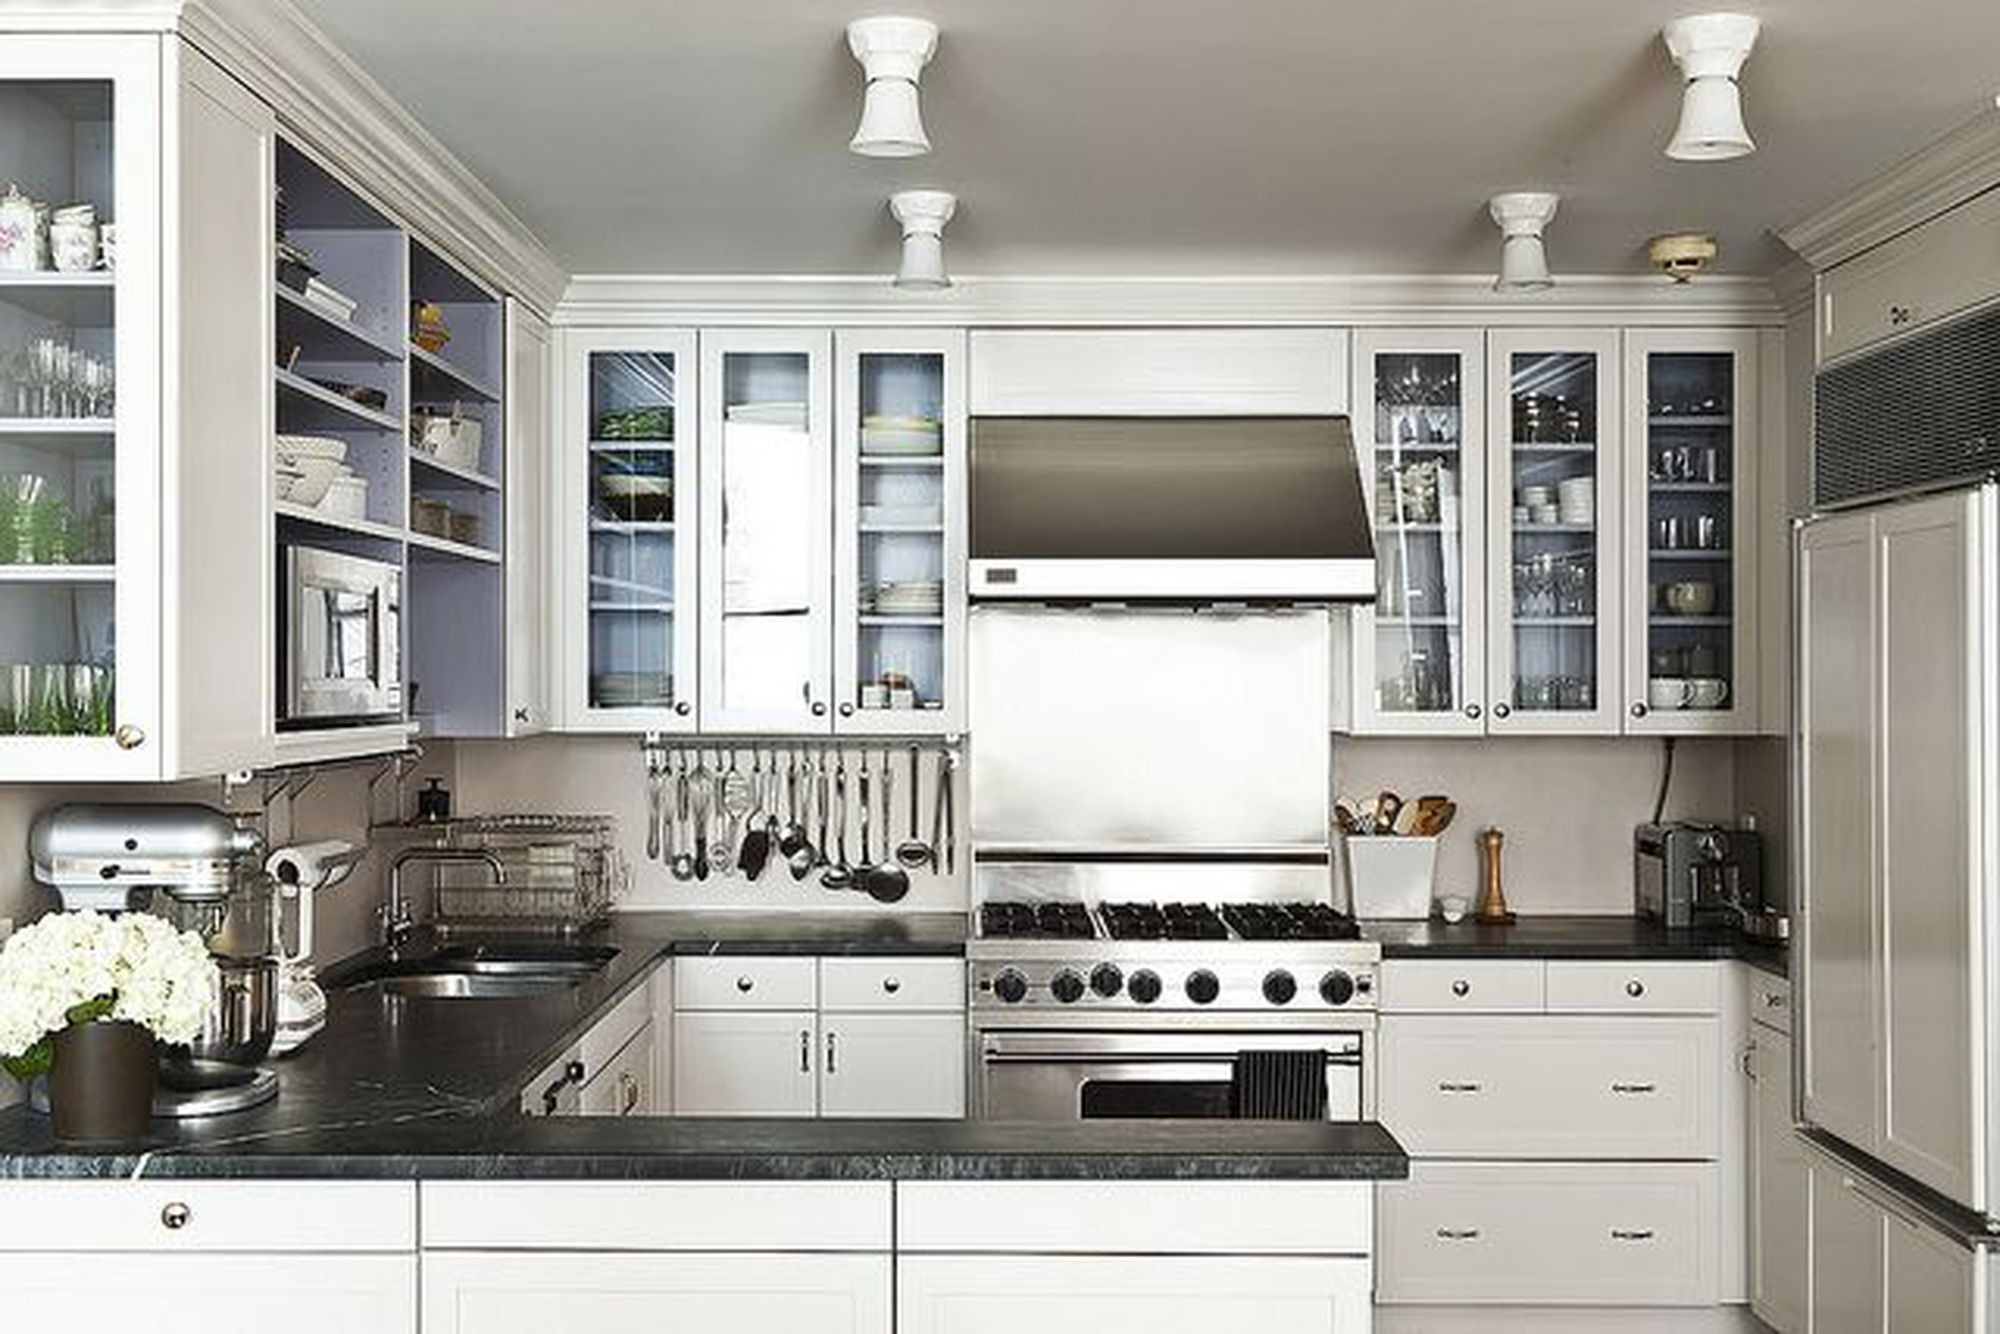 Amanda Hesser's Very Best Tips for an Organized Kitchen